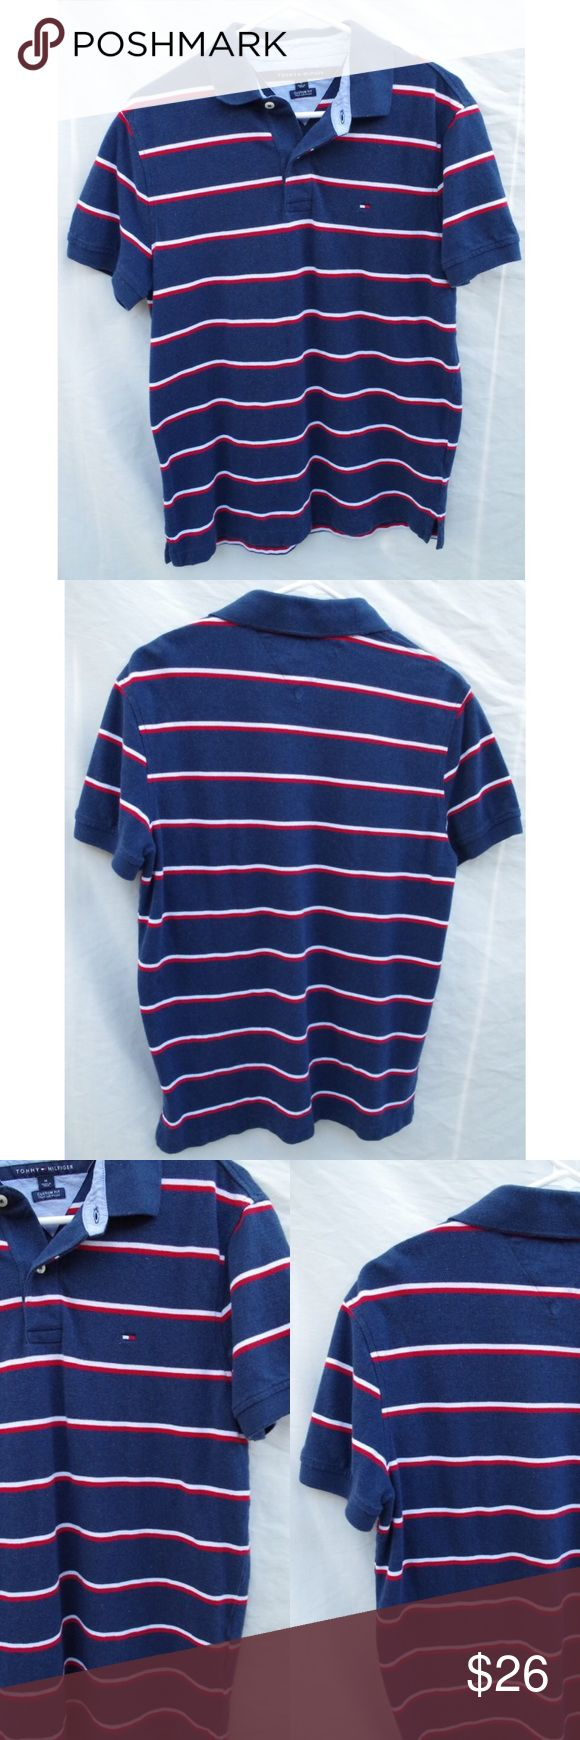 Tommy Hilfiger Striped Classic Collared Polo Shirt Tommy Hilfiger brand. Custom fit Size Medium polo collared button up shirt. Red, white, and navy blue striped color. Classic polo flag on front. Mens but can be worn women's as well, super cute with white jeans or pleated skirt. Good condition, light wear no significant flaws. FREE SURPRISE GIFT WITH EVERY ORDER! Fast shipping! Price negotiable! Tommy Hilfiger Shirts Polos